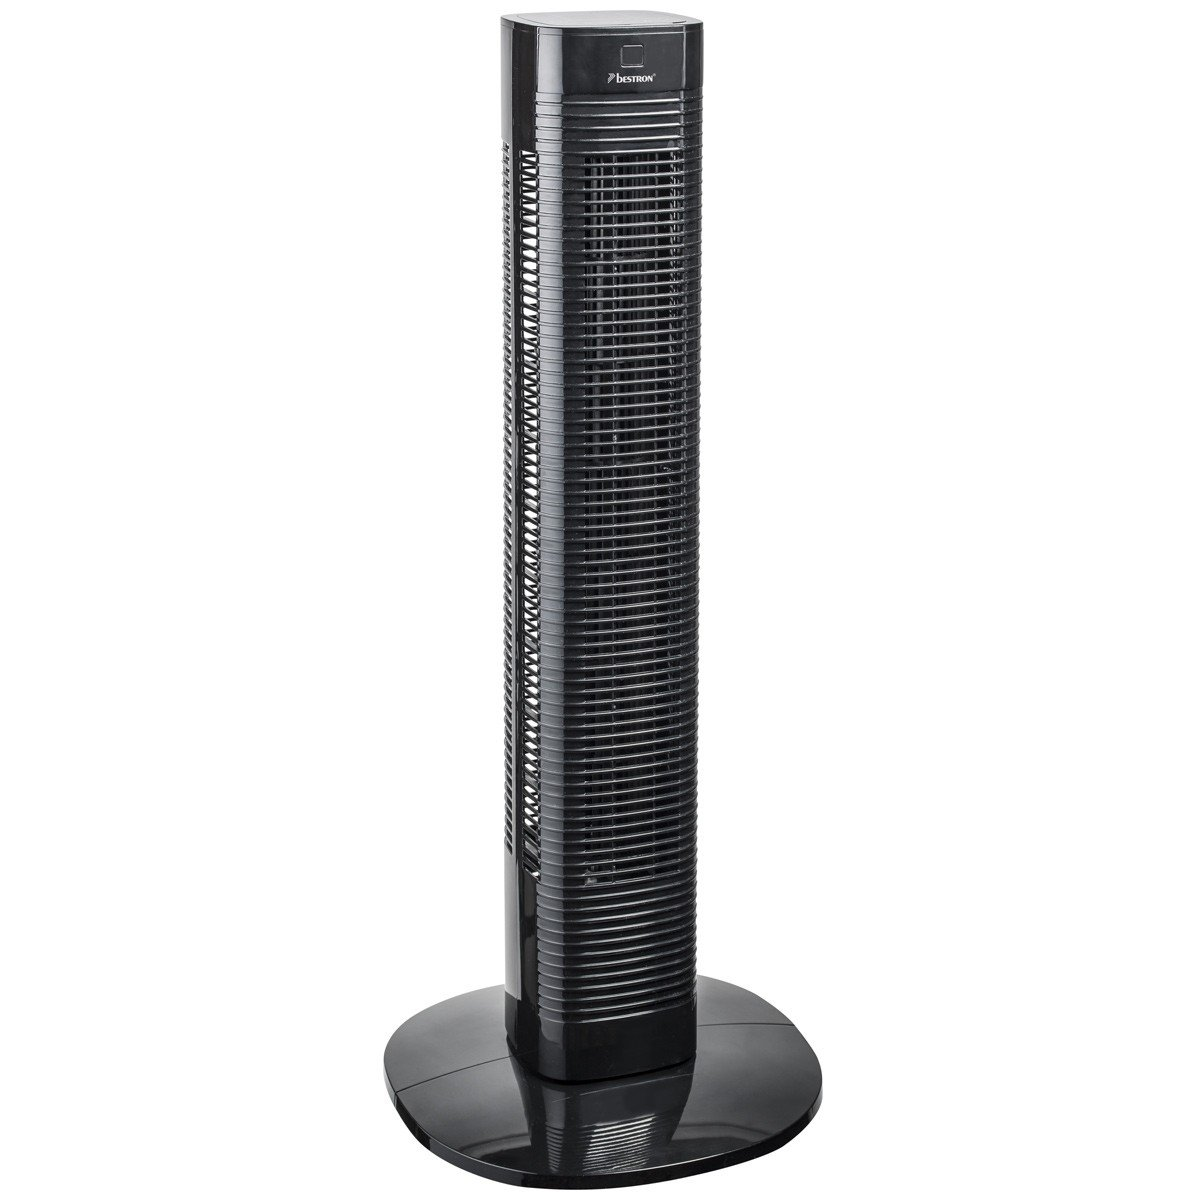 Verwonderend Bestron Compact Tower Fan With Remote Control and Digital Timer HQ-61